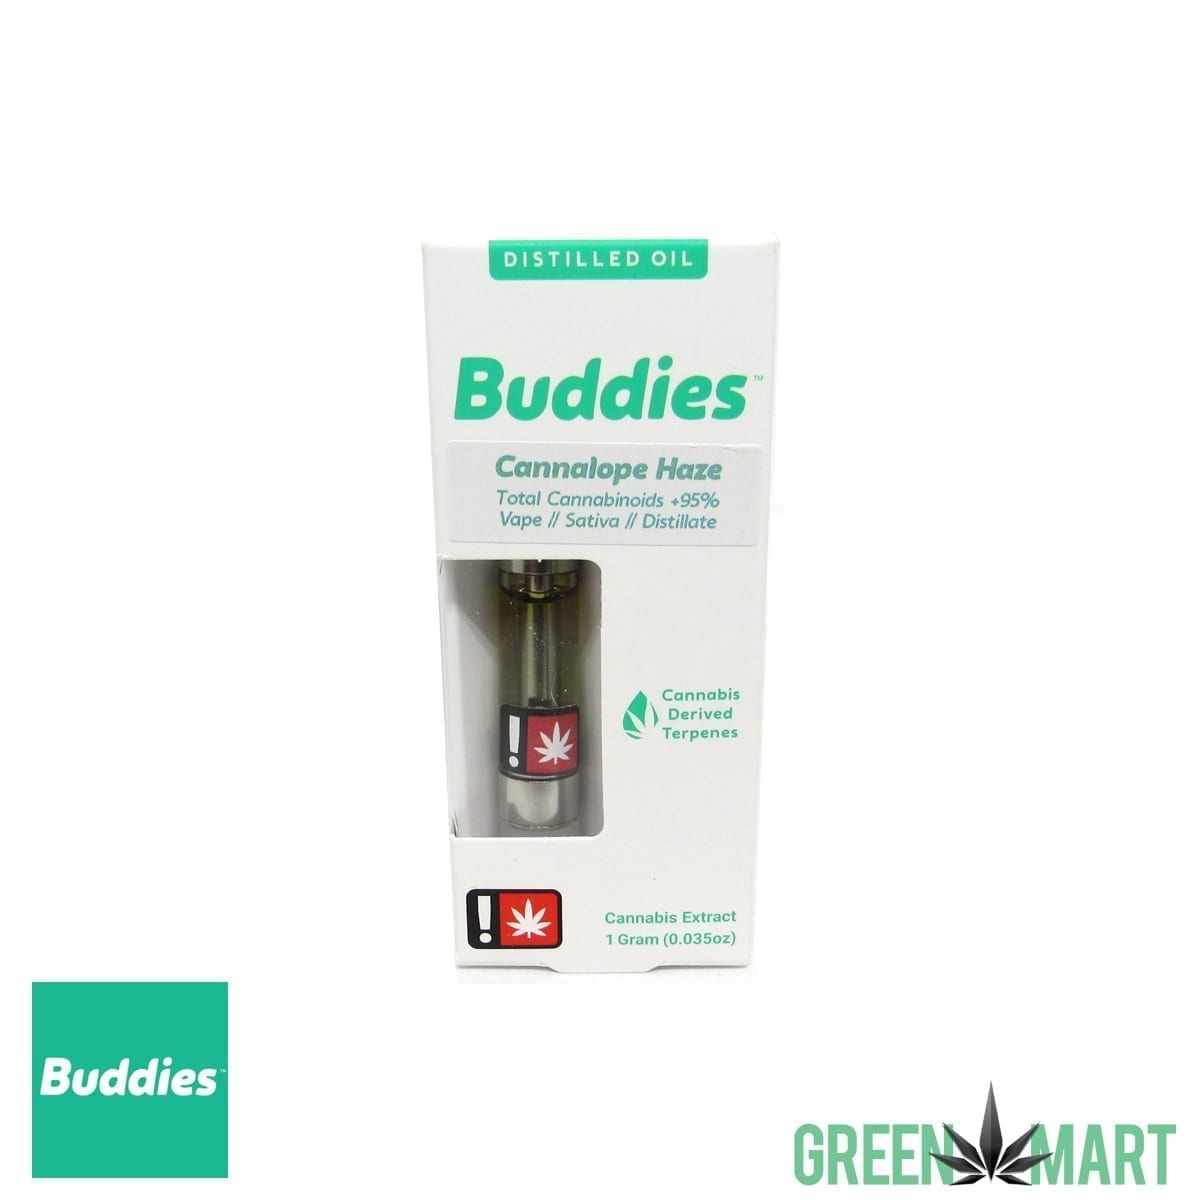 Buddies Brand Distillate Cartridge - Cannalope Haze